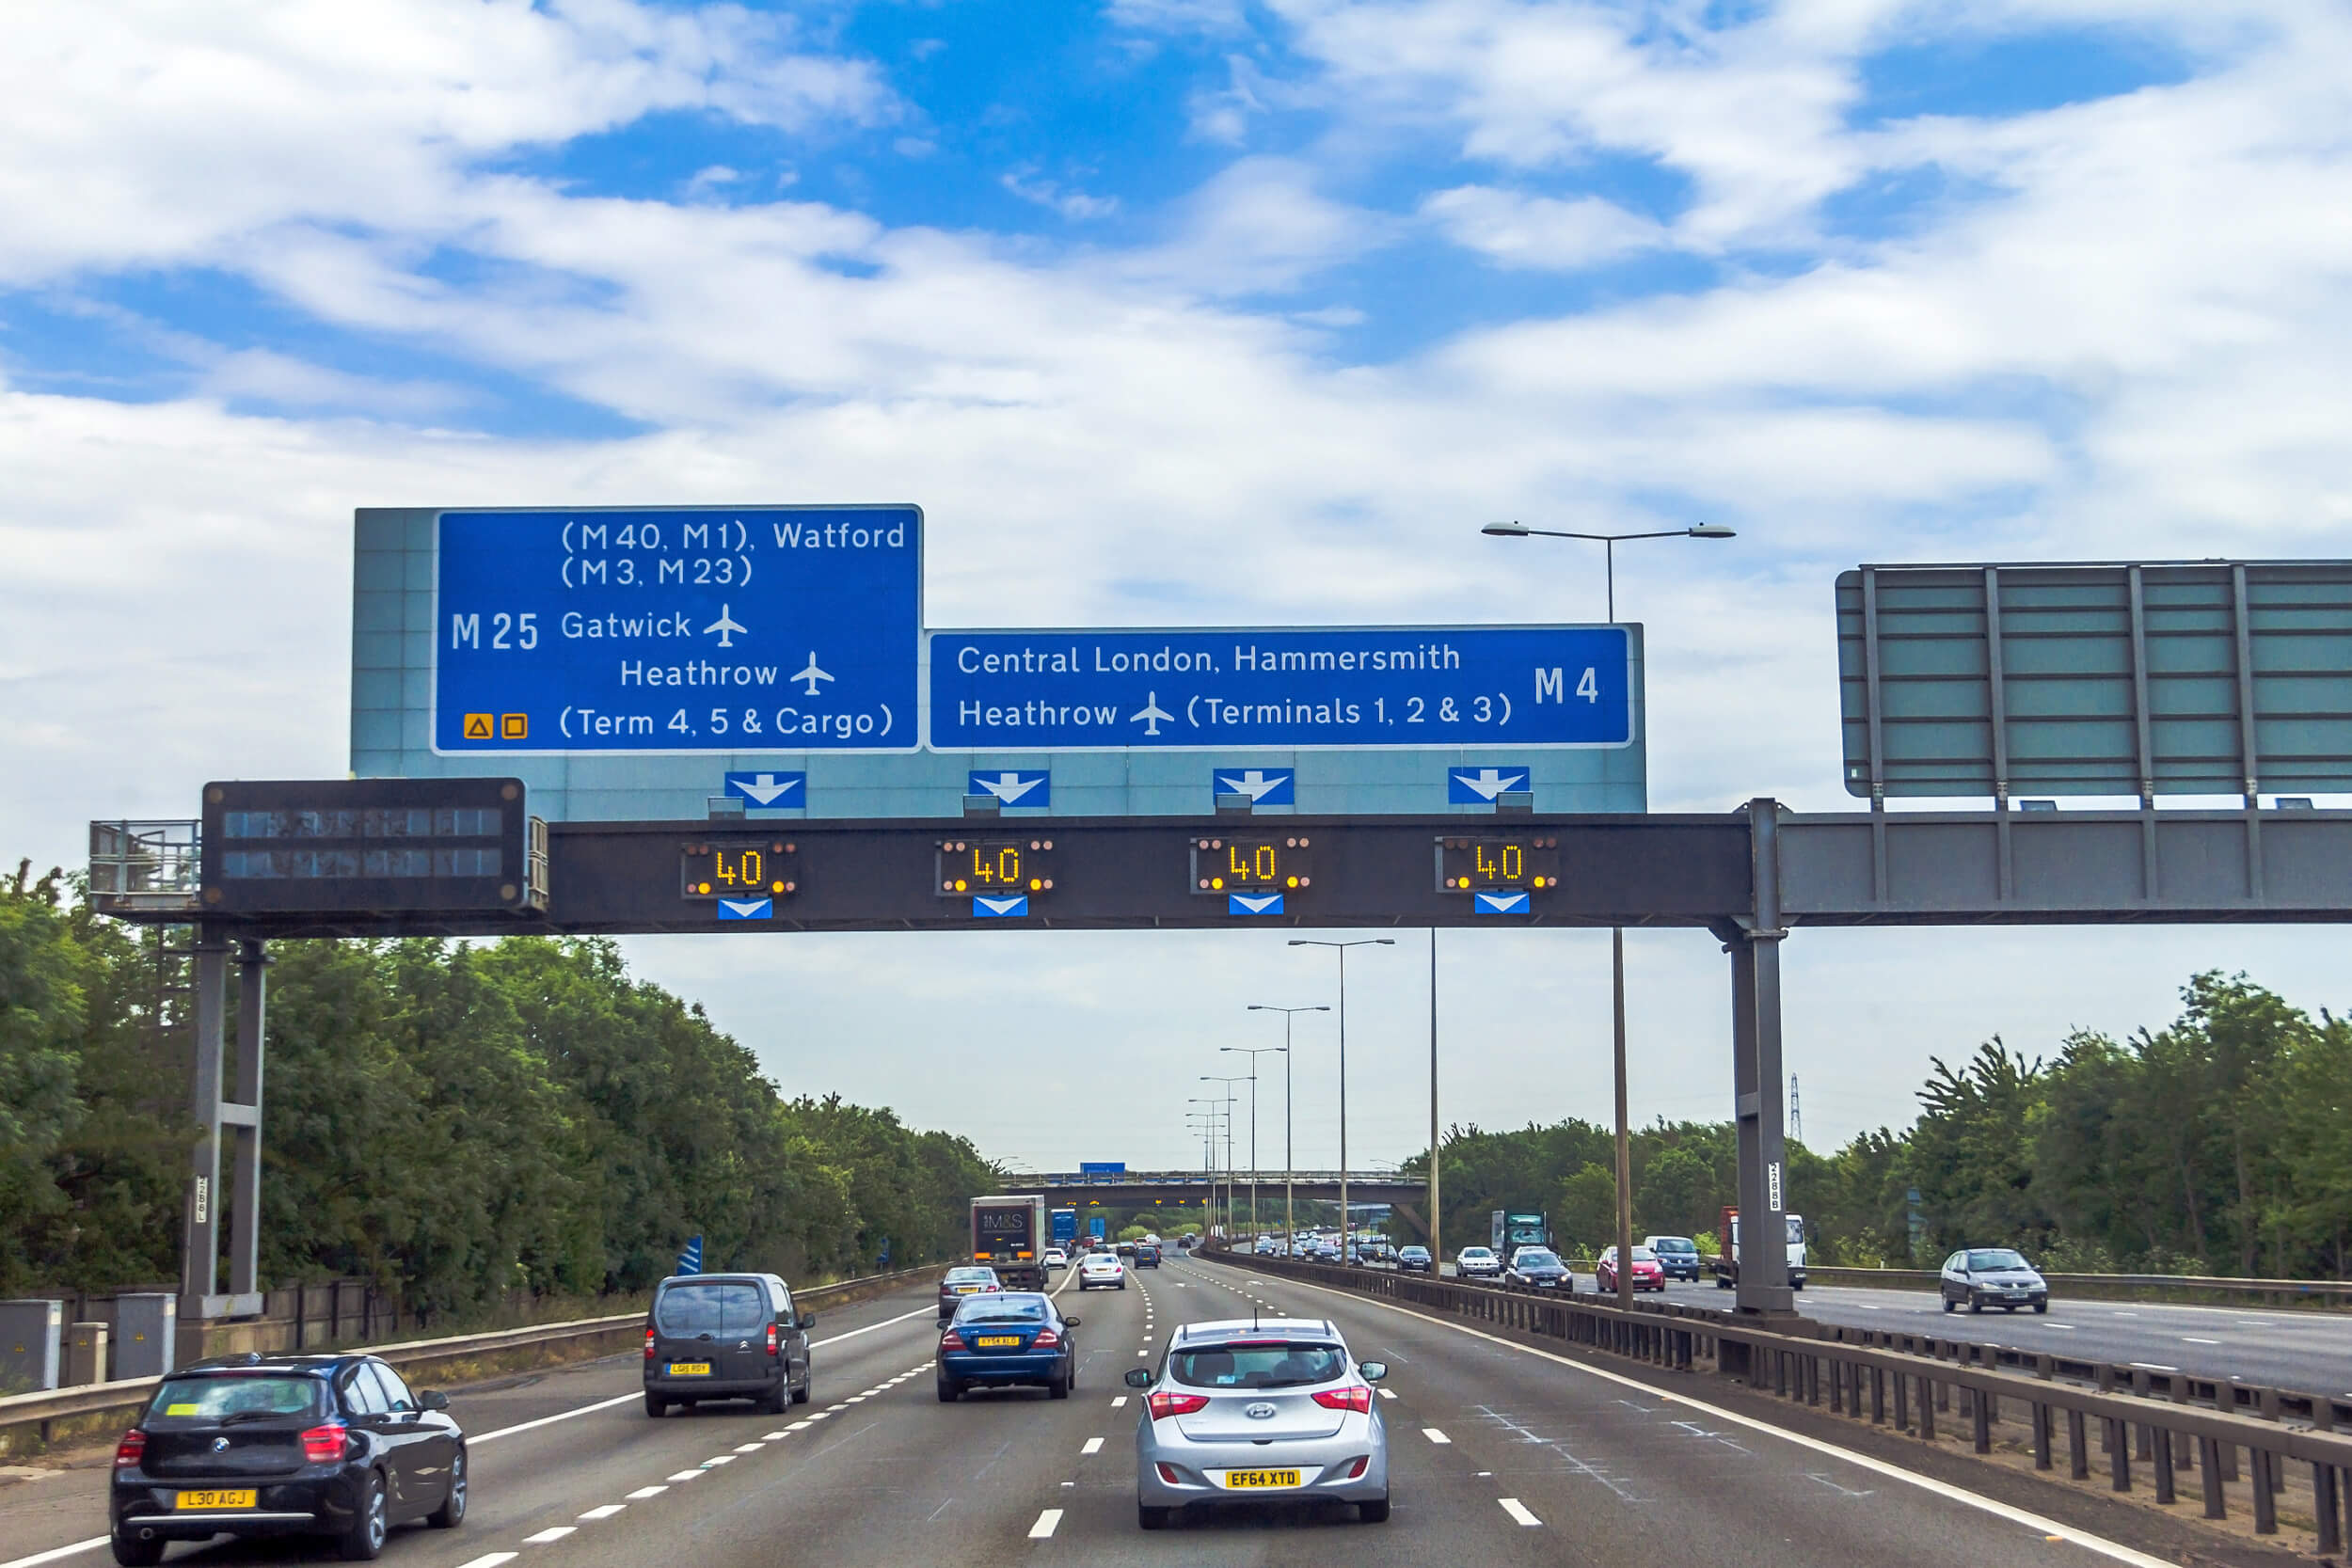 Motorway direction signs with cars avoiding speeding fines by driving below 70 mph